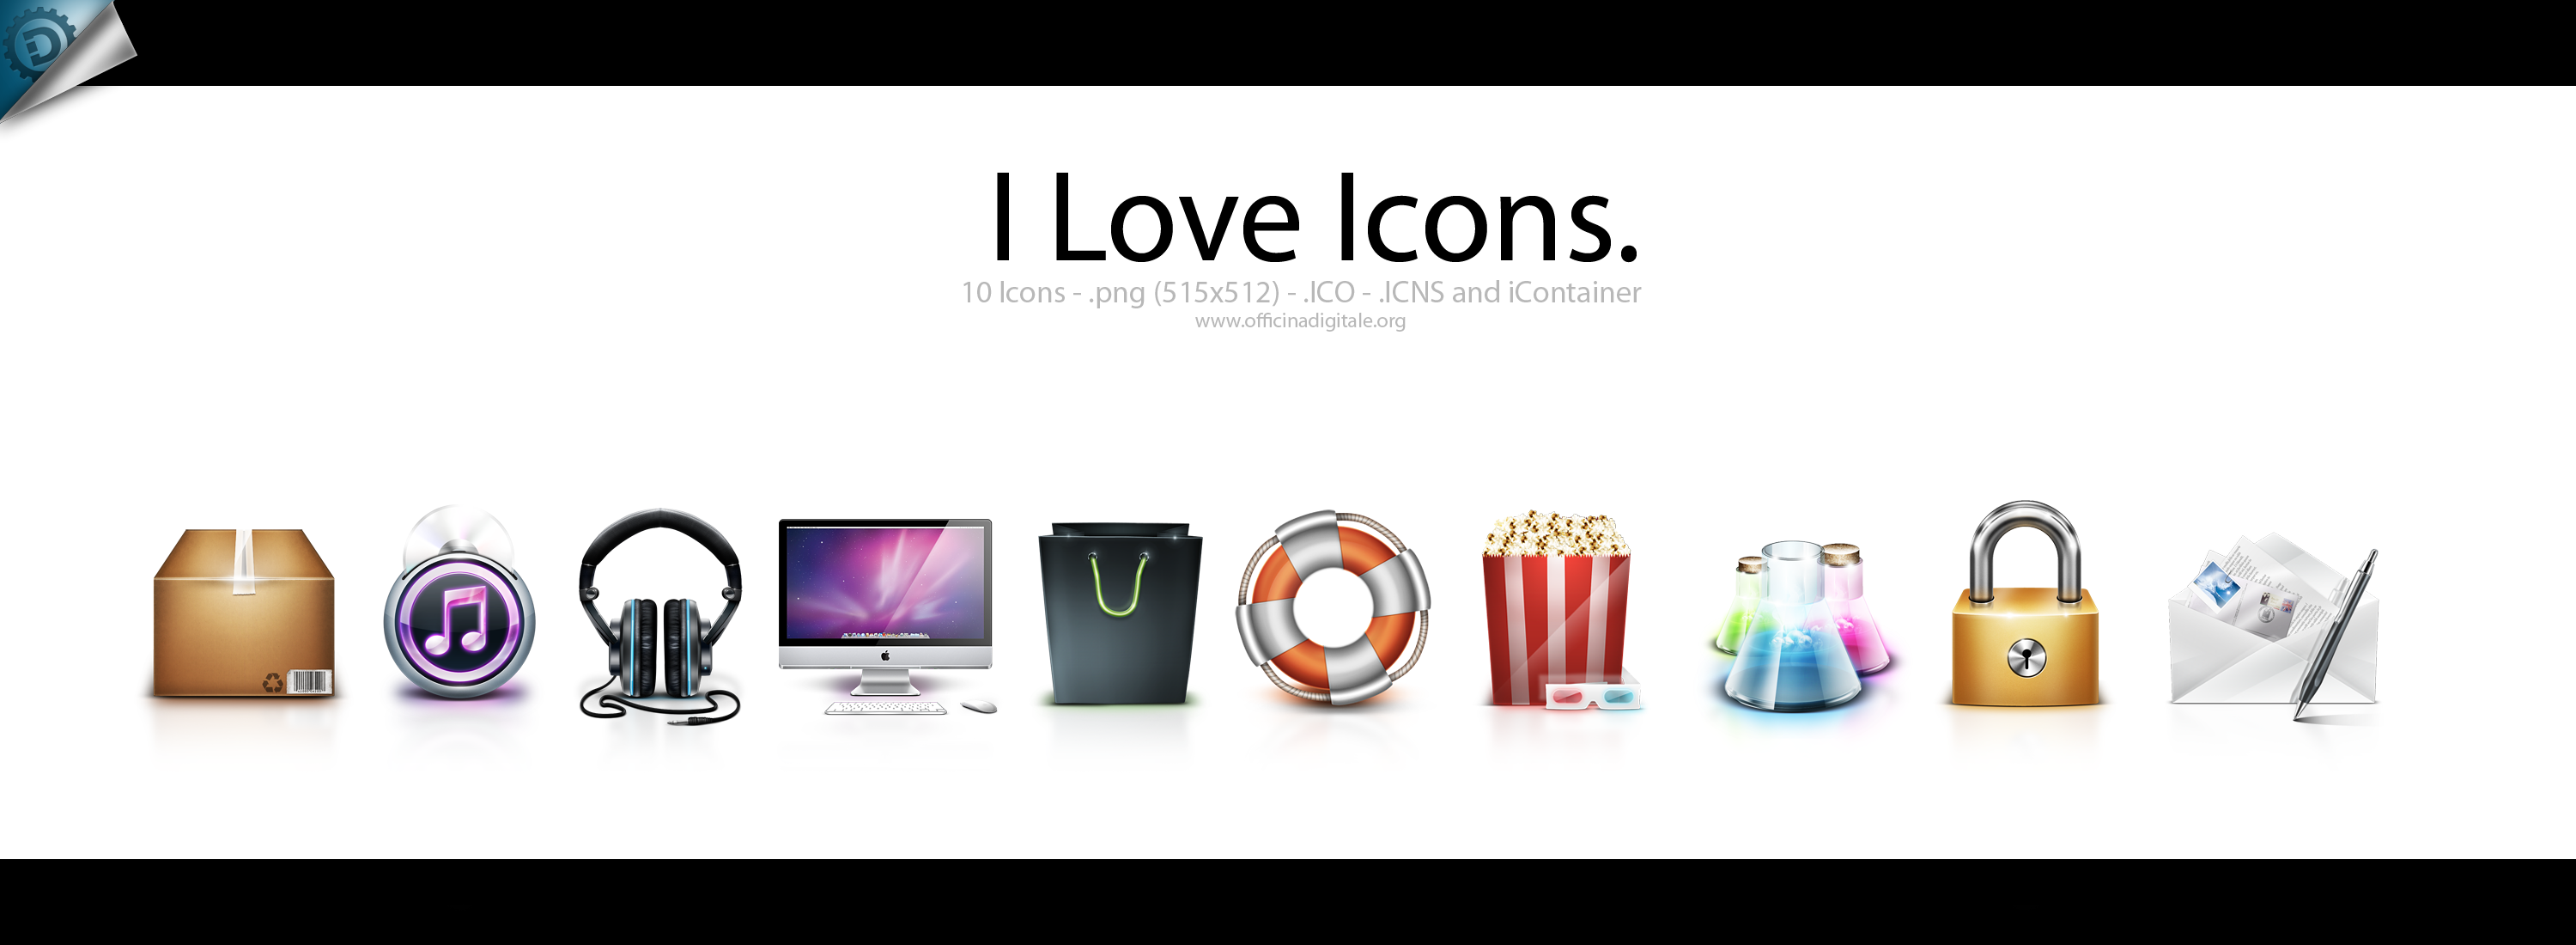 I Love Icons. by Svengraph